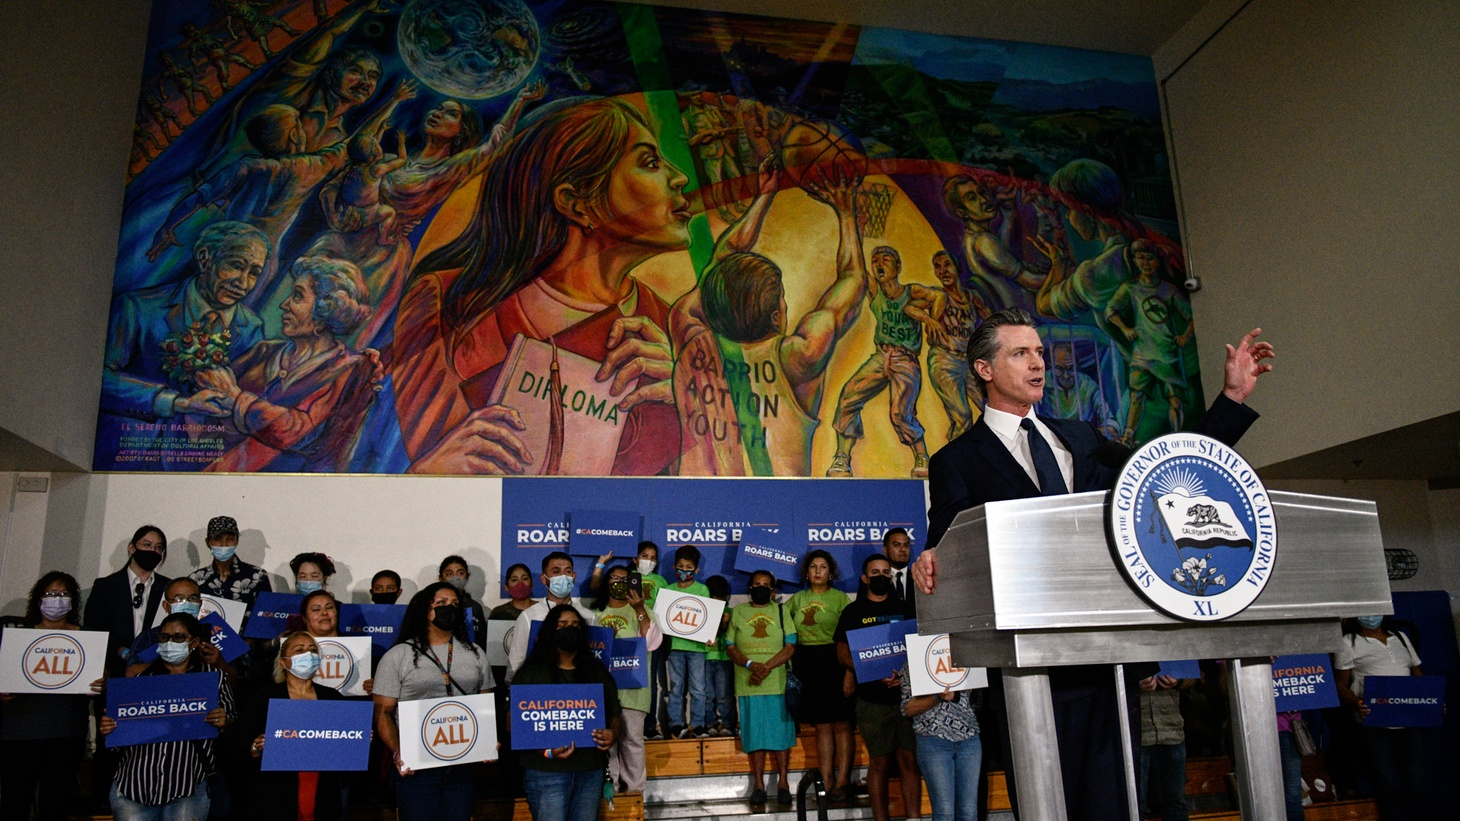 Gov. Gavin Newsom delivers a speech during a rally at the Barrio Action Youth and Family Center in El Sereno, where he signed the California Comeback Plan relief bill, on July 13, 2021.